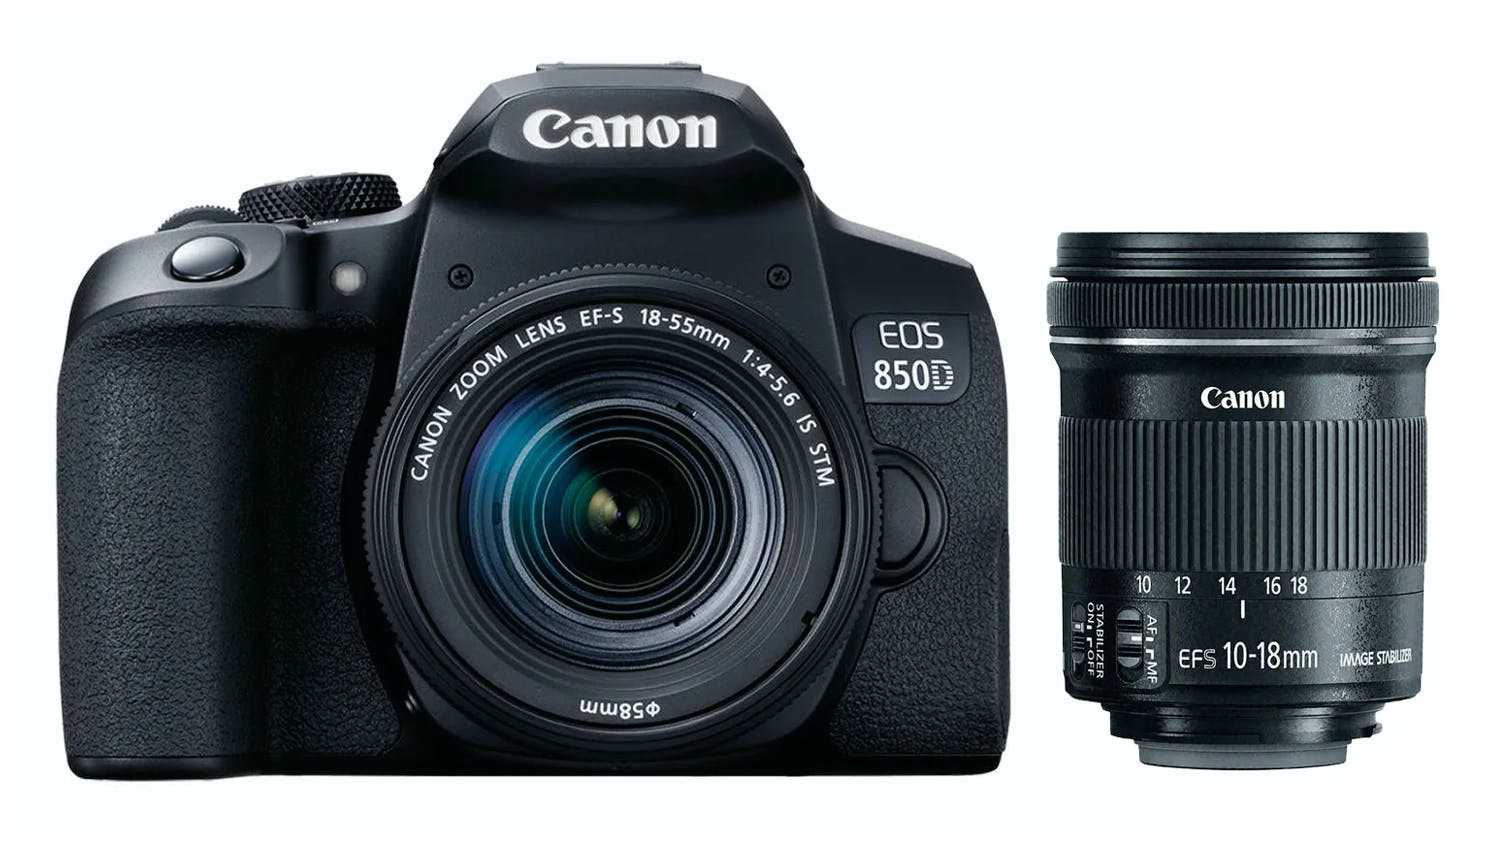 Image of Canon EOS 850D DSLR with 18-55mm & 10-18mm Lens